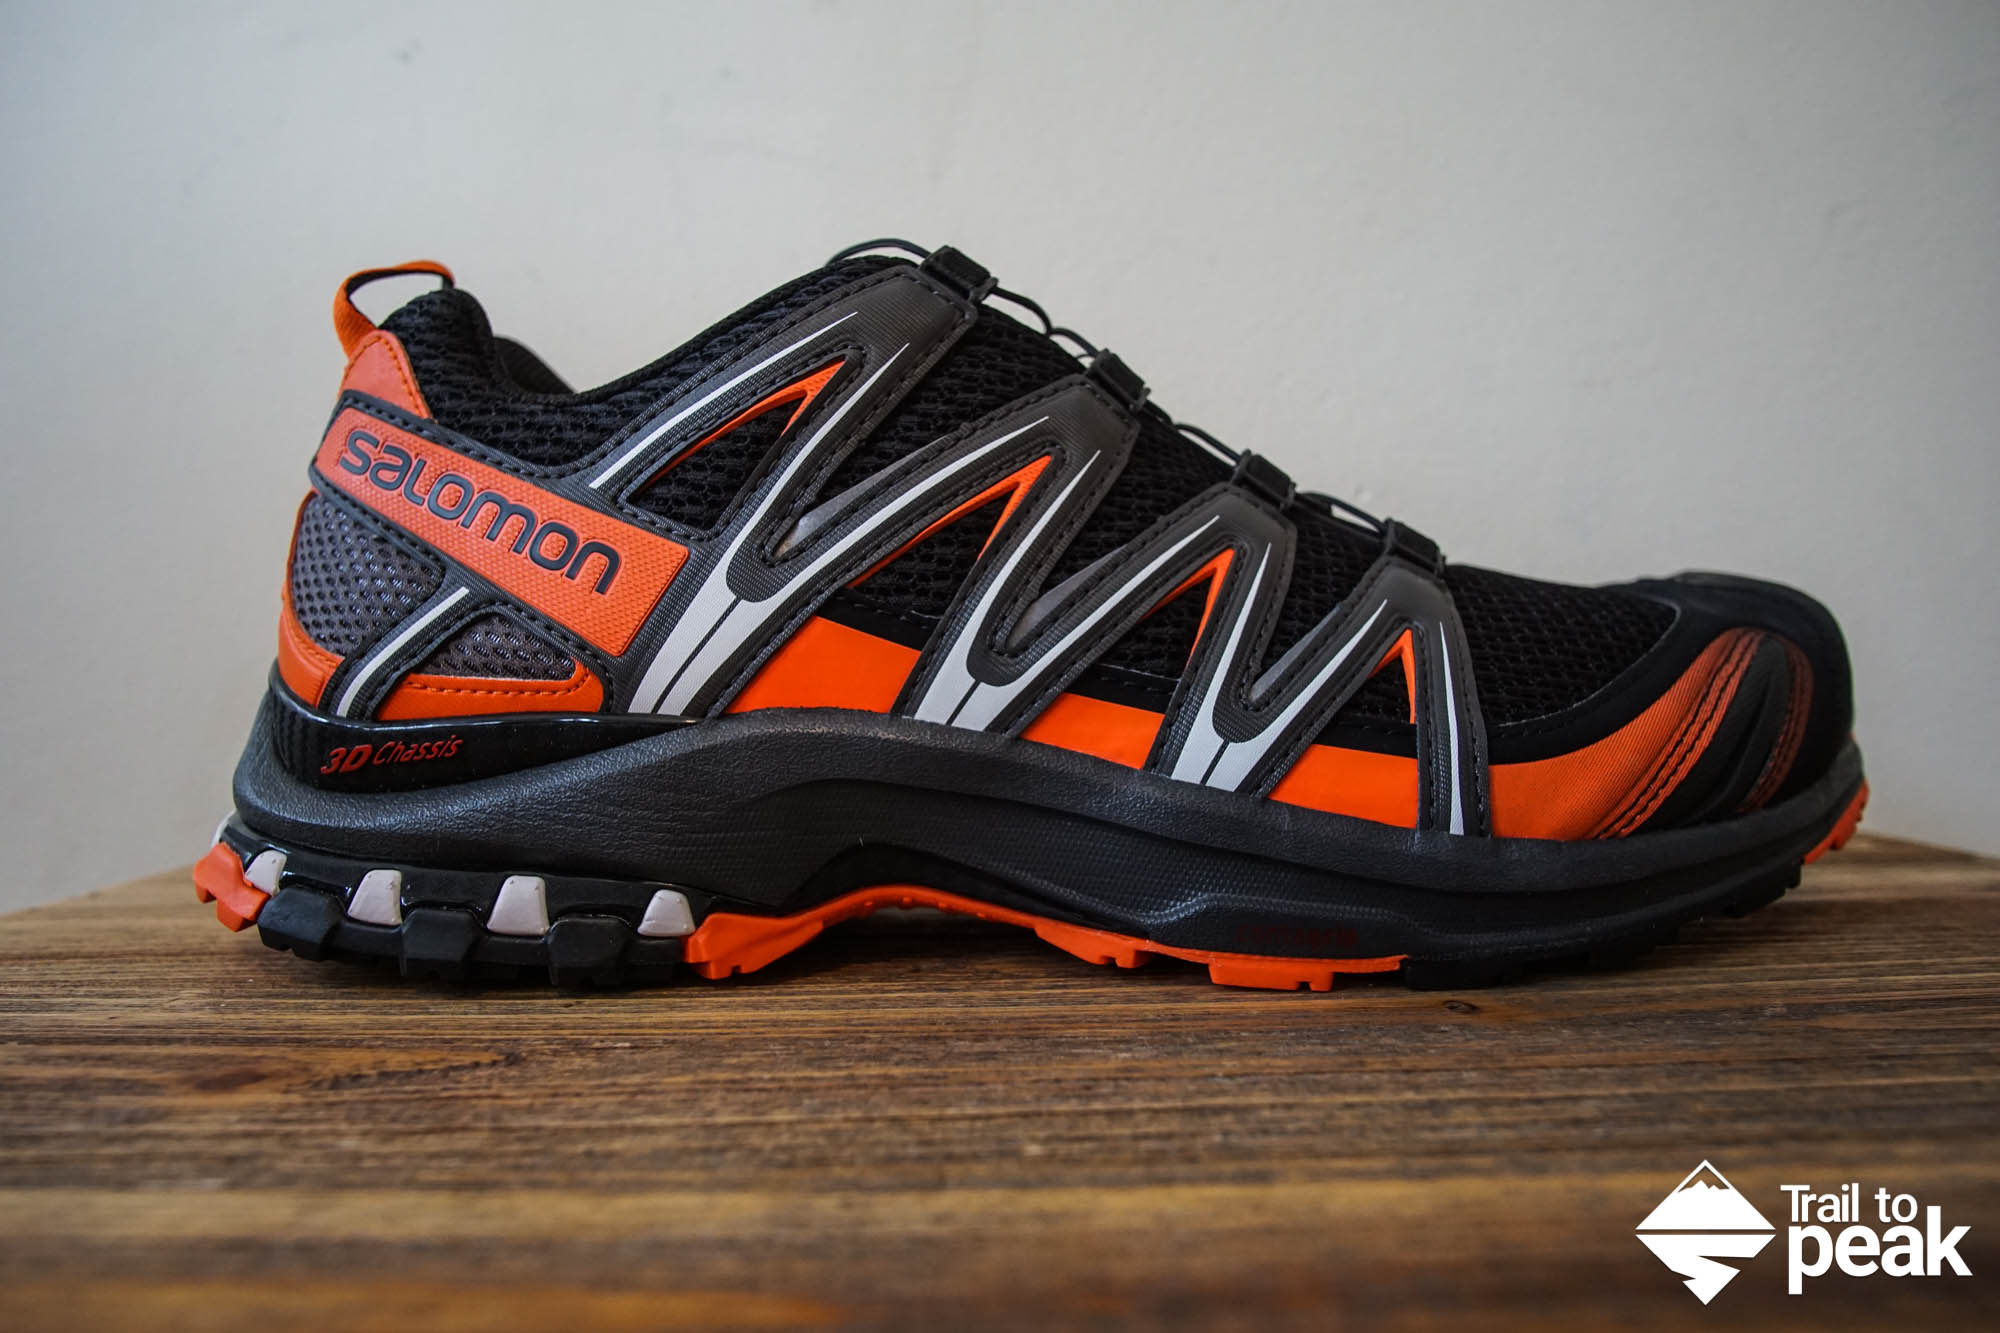 Salomon XA Pro 3D Preview Shoe Review 2017